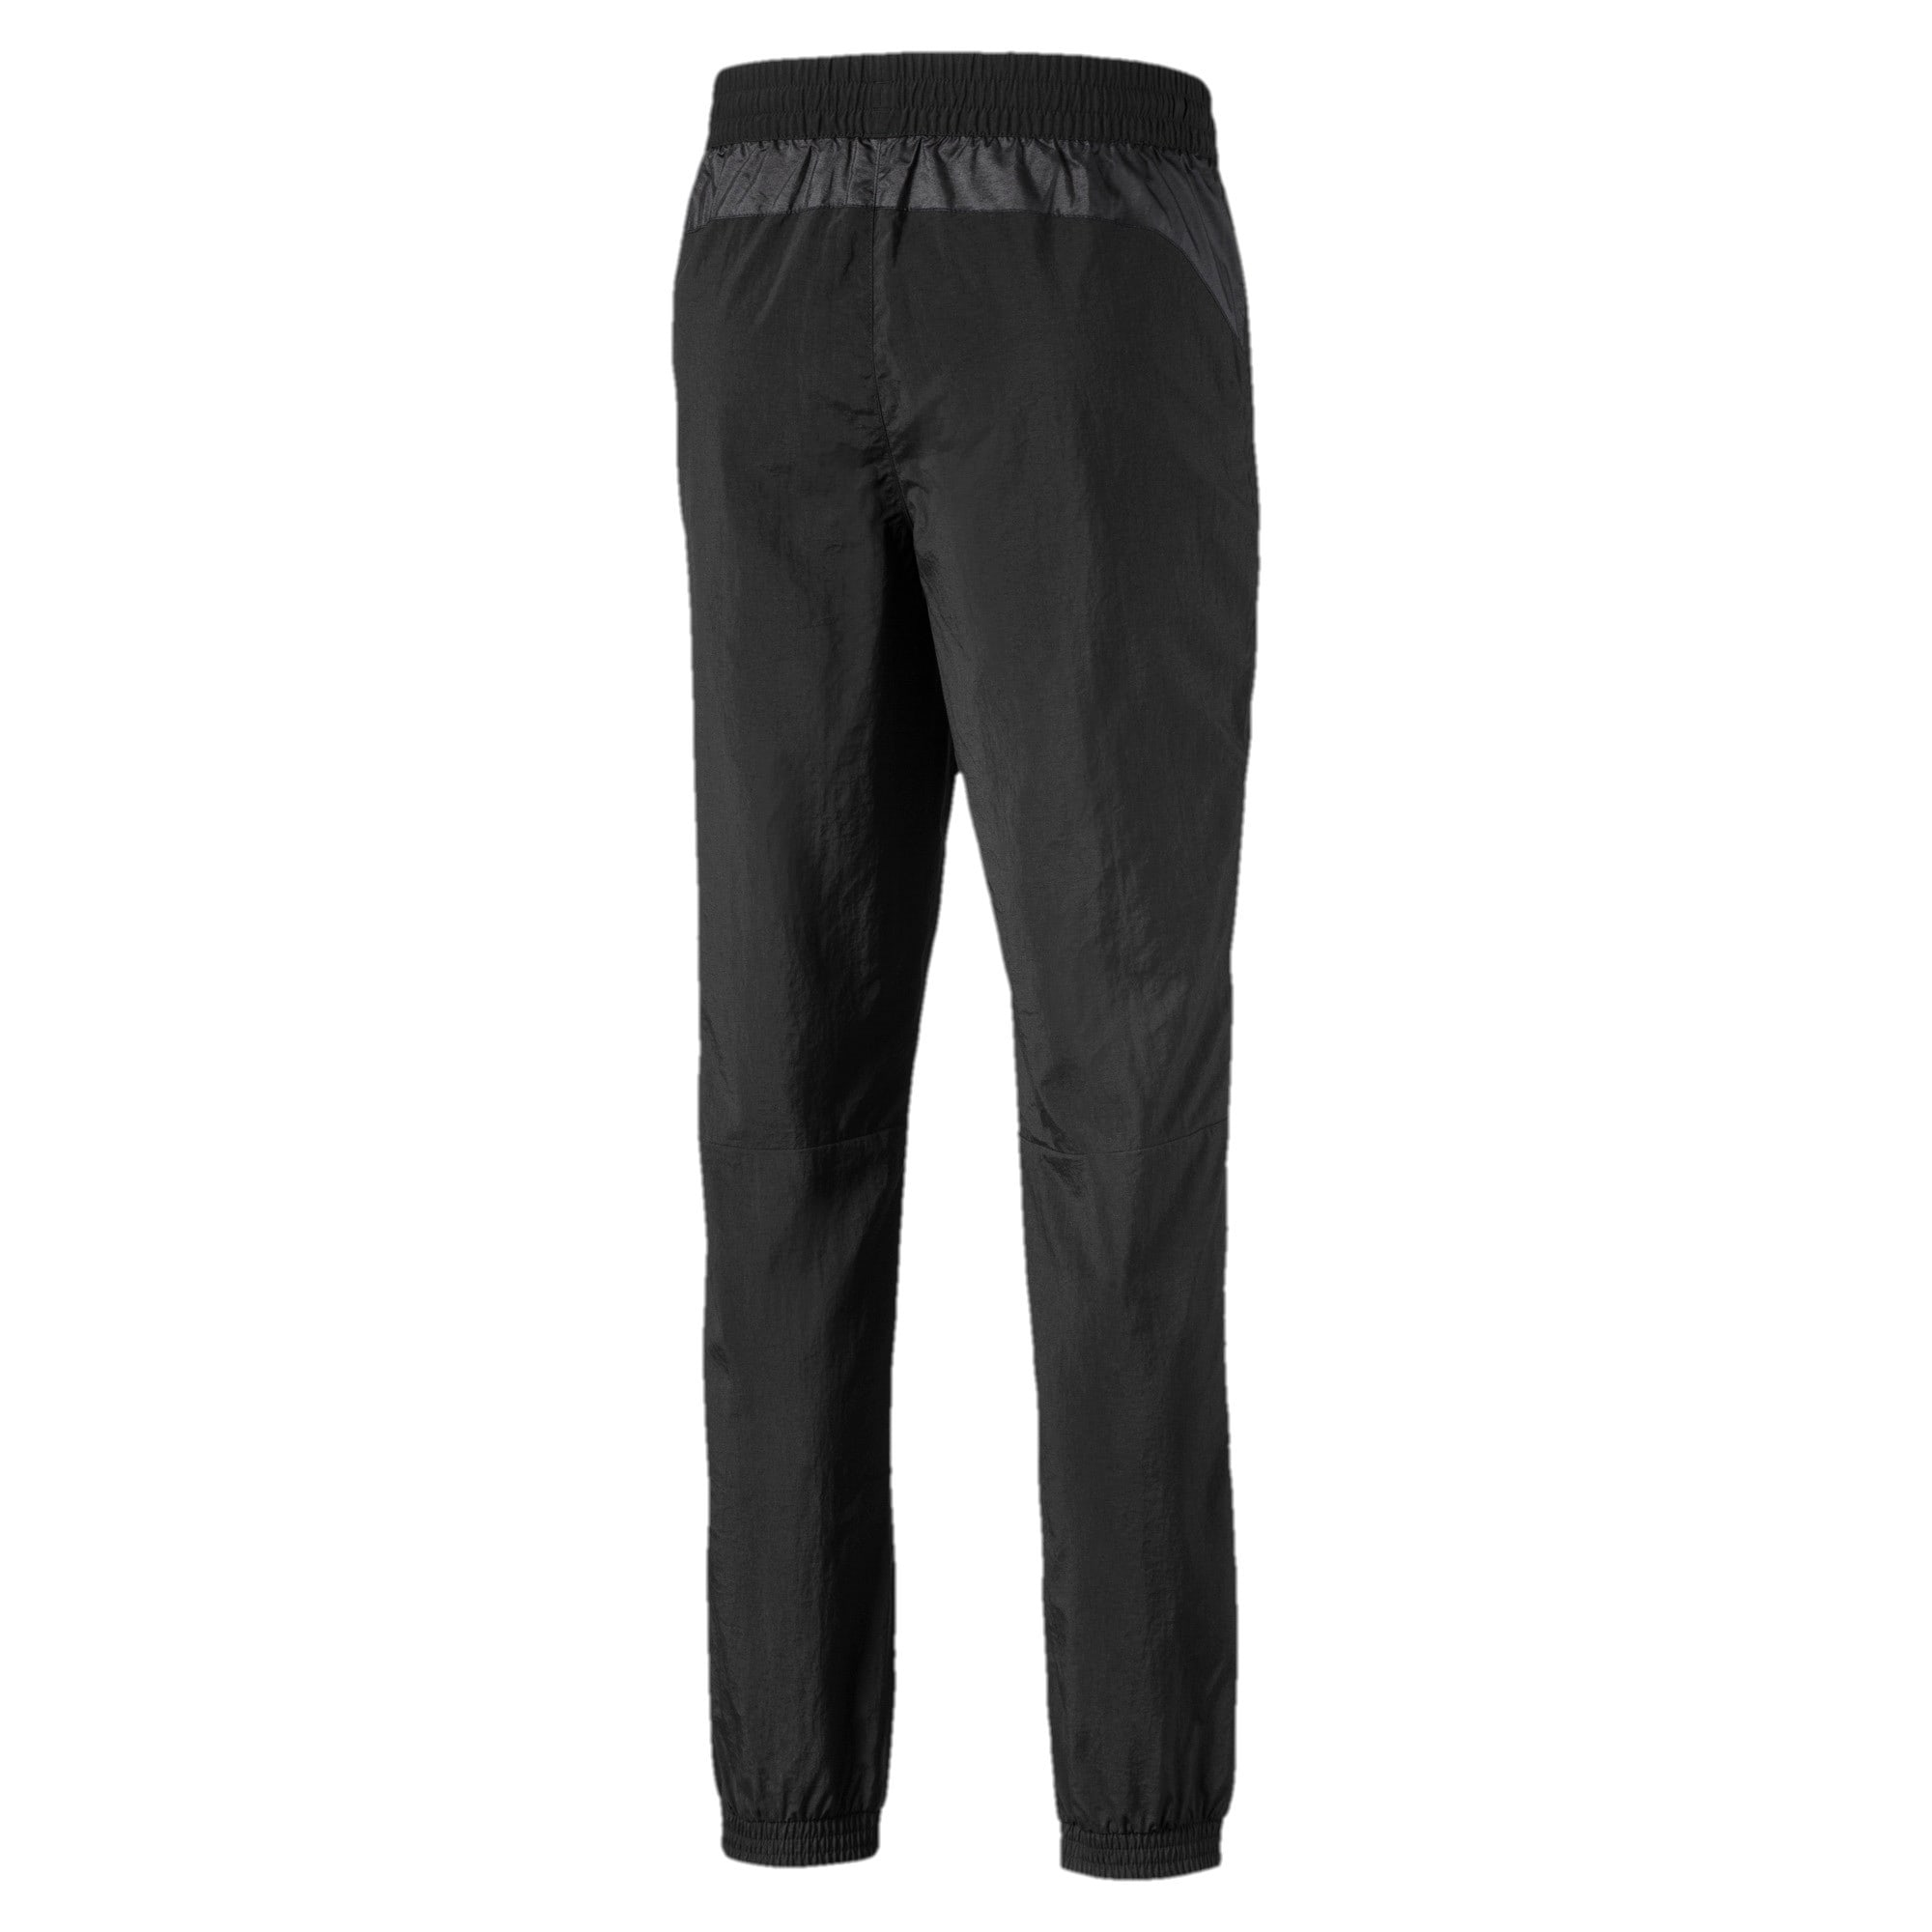 Thumbnail 2 of Mercedes Woven Men's Street Pants, Puma Black, medium